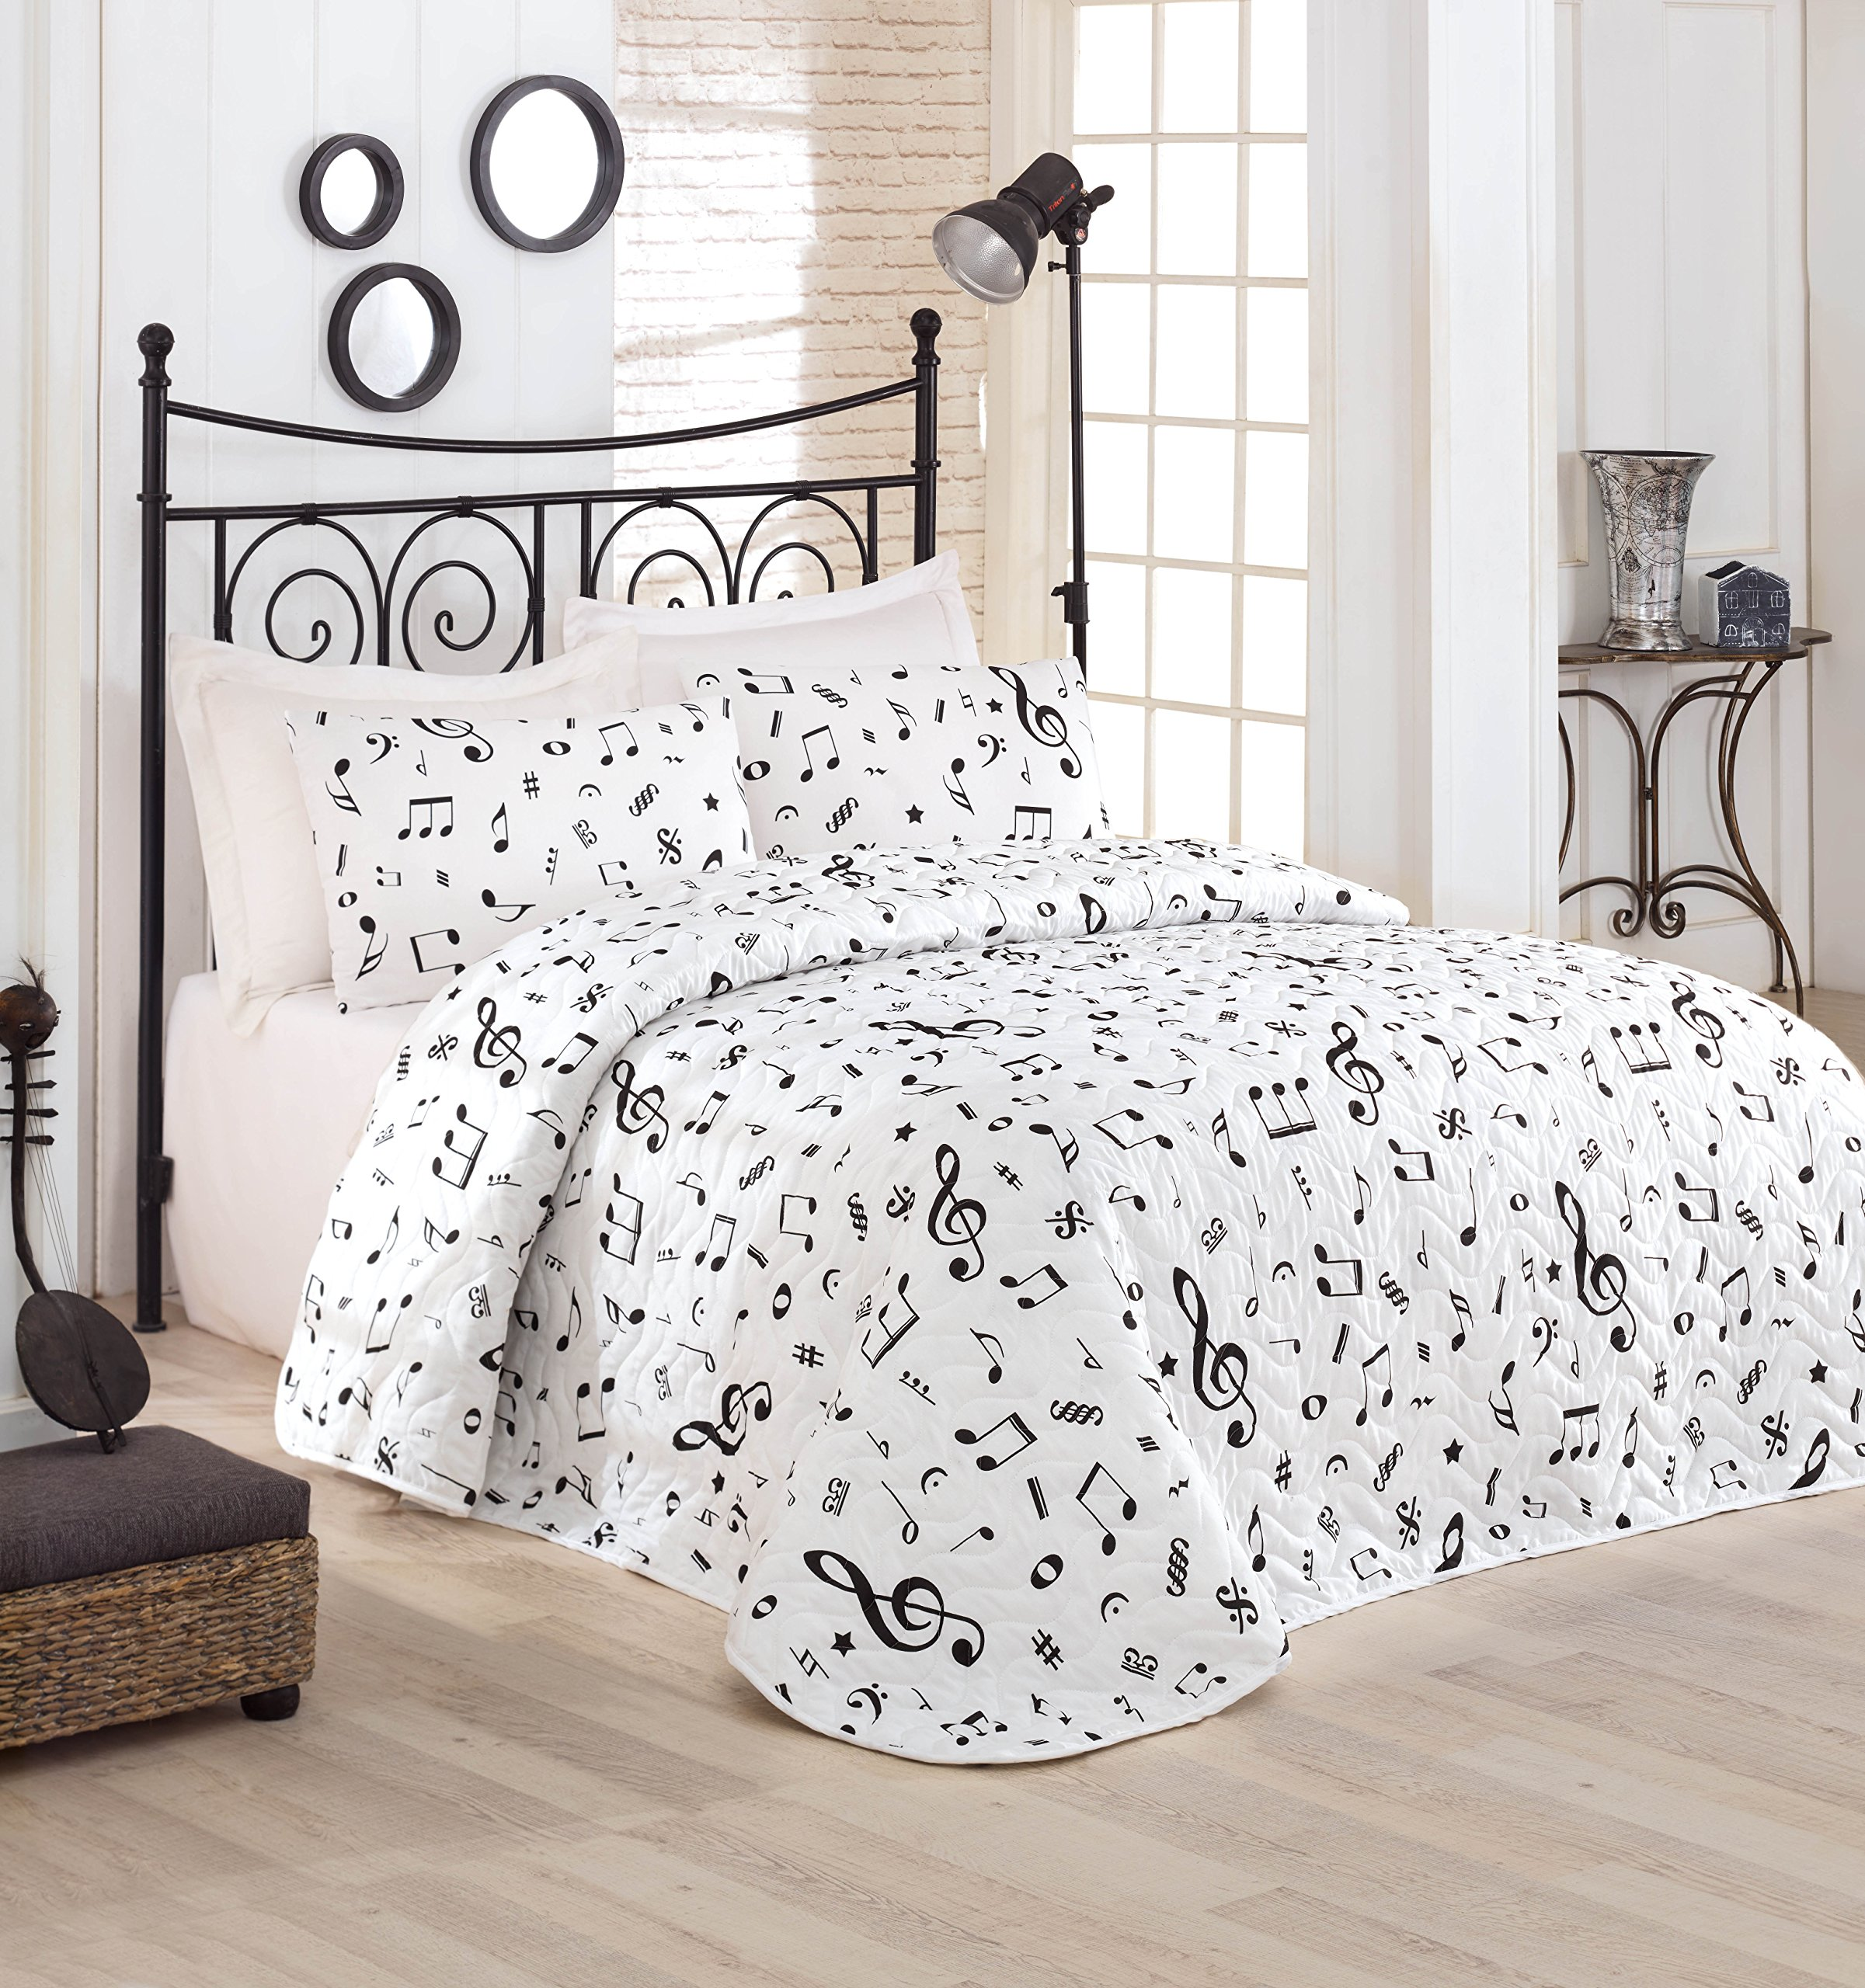 DecoMood Music Bedding, Full/Queen Size Bedspread/Coverlet Set, Melody Themed, Black and White Girls Boys Bedding, 3 PCS, by DecoMood